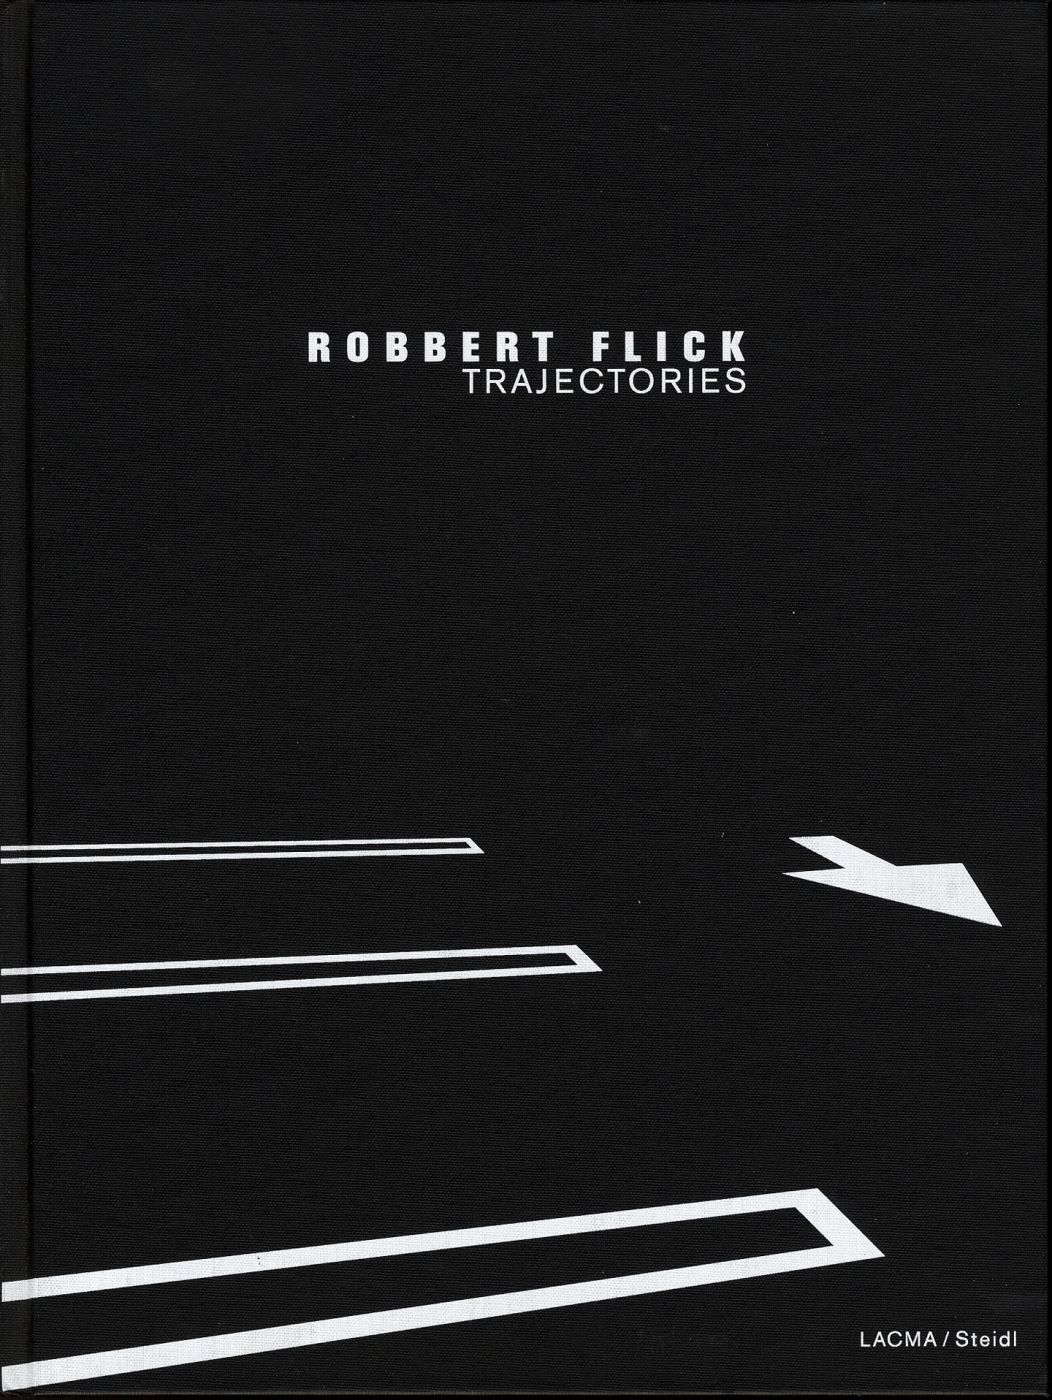 Robbert Flick: Trajectories